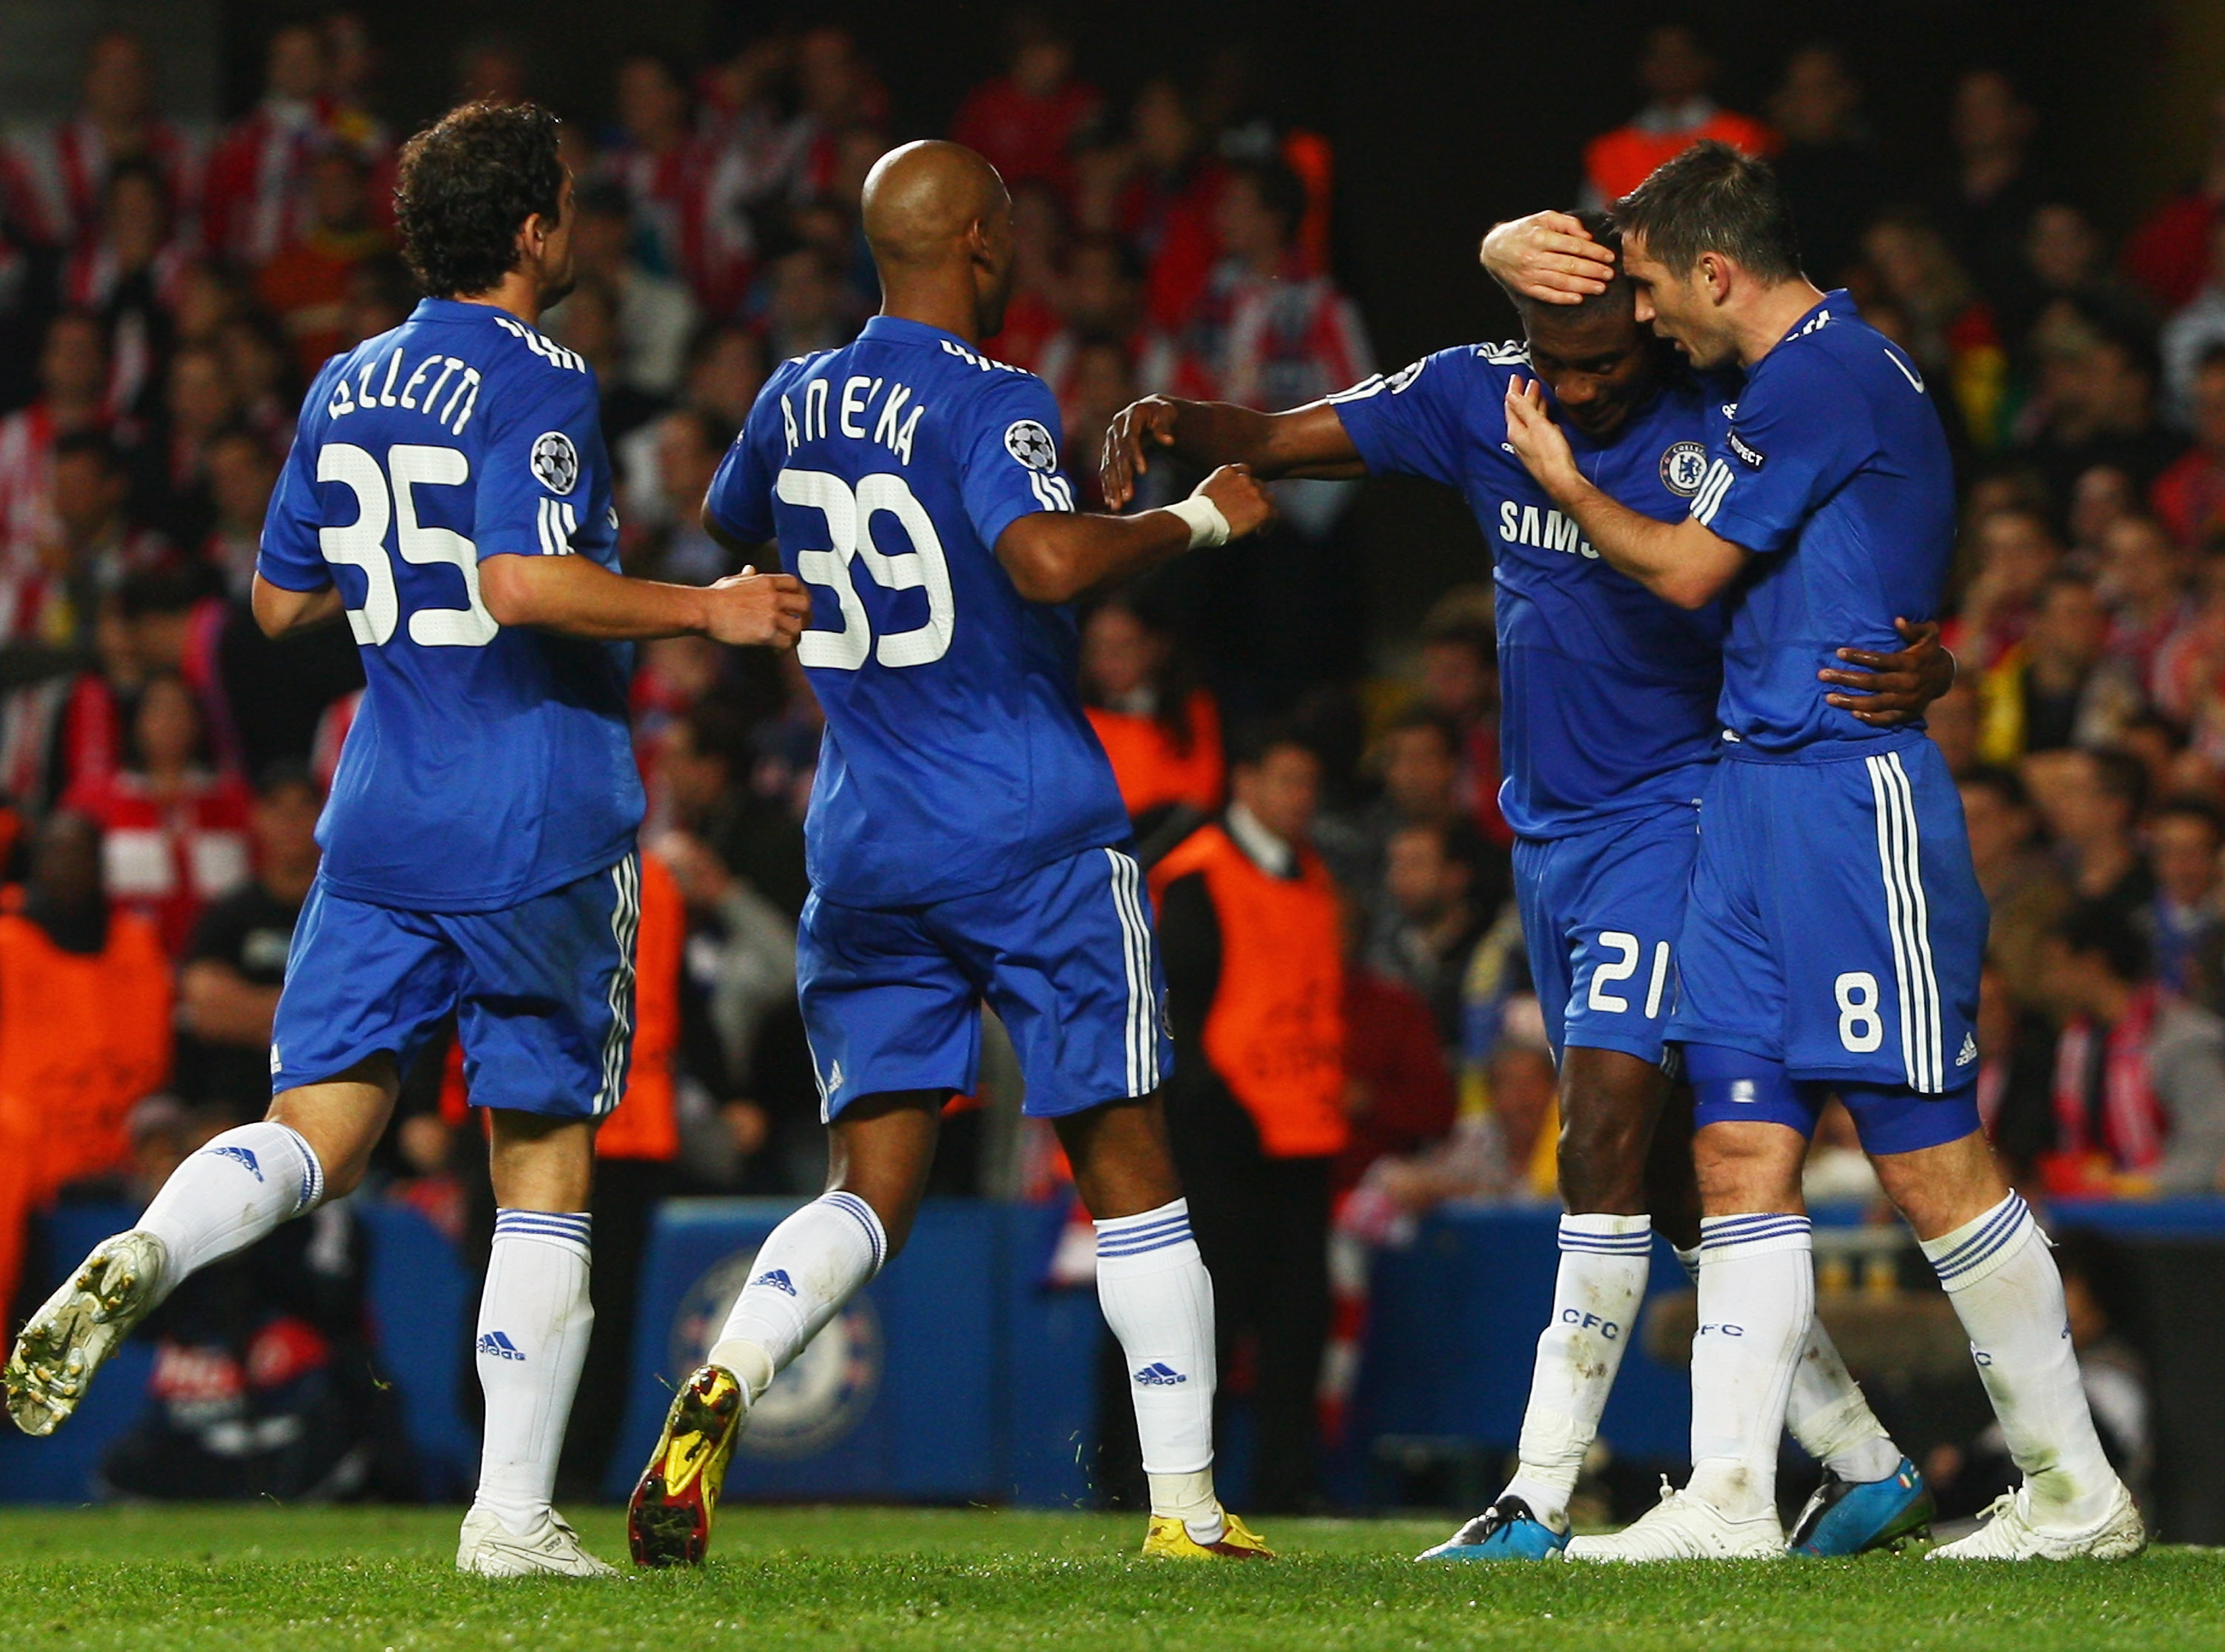 LONDON - OCTOBER 21:  Salomon Kalou of Chelsea (2R)celebrates with Frank Lampard (8), Nicolas Anelka (39) and Juliano Belletti  (35) as he scores their first goal during the UEFA Champions League Group D match between Chelsea and Atletico Madrid at Stamfo